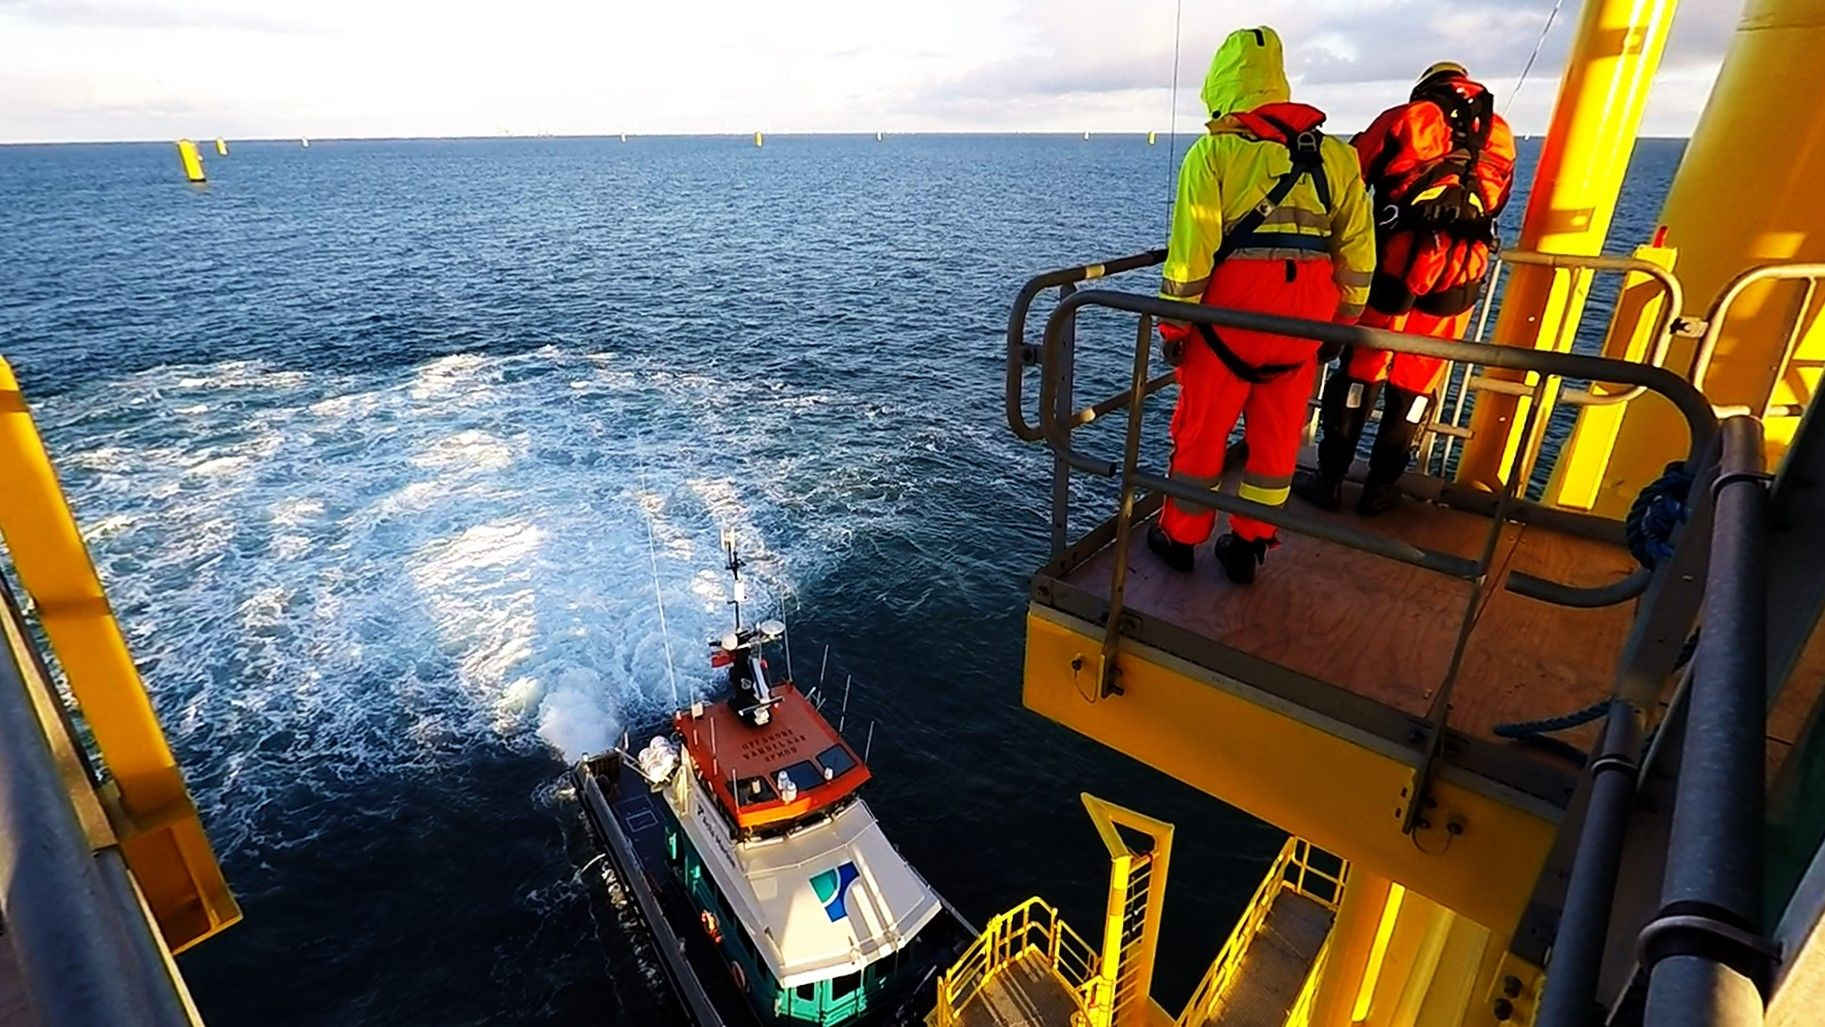 Gemini wind farm offshore high voltage substation - Boat Transfer